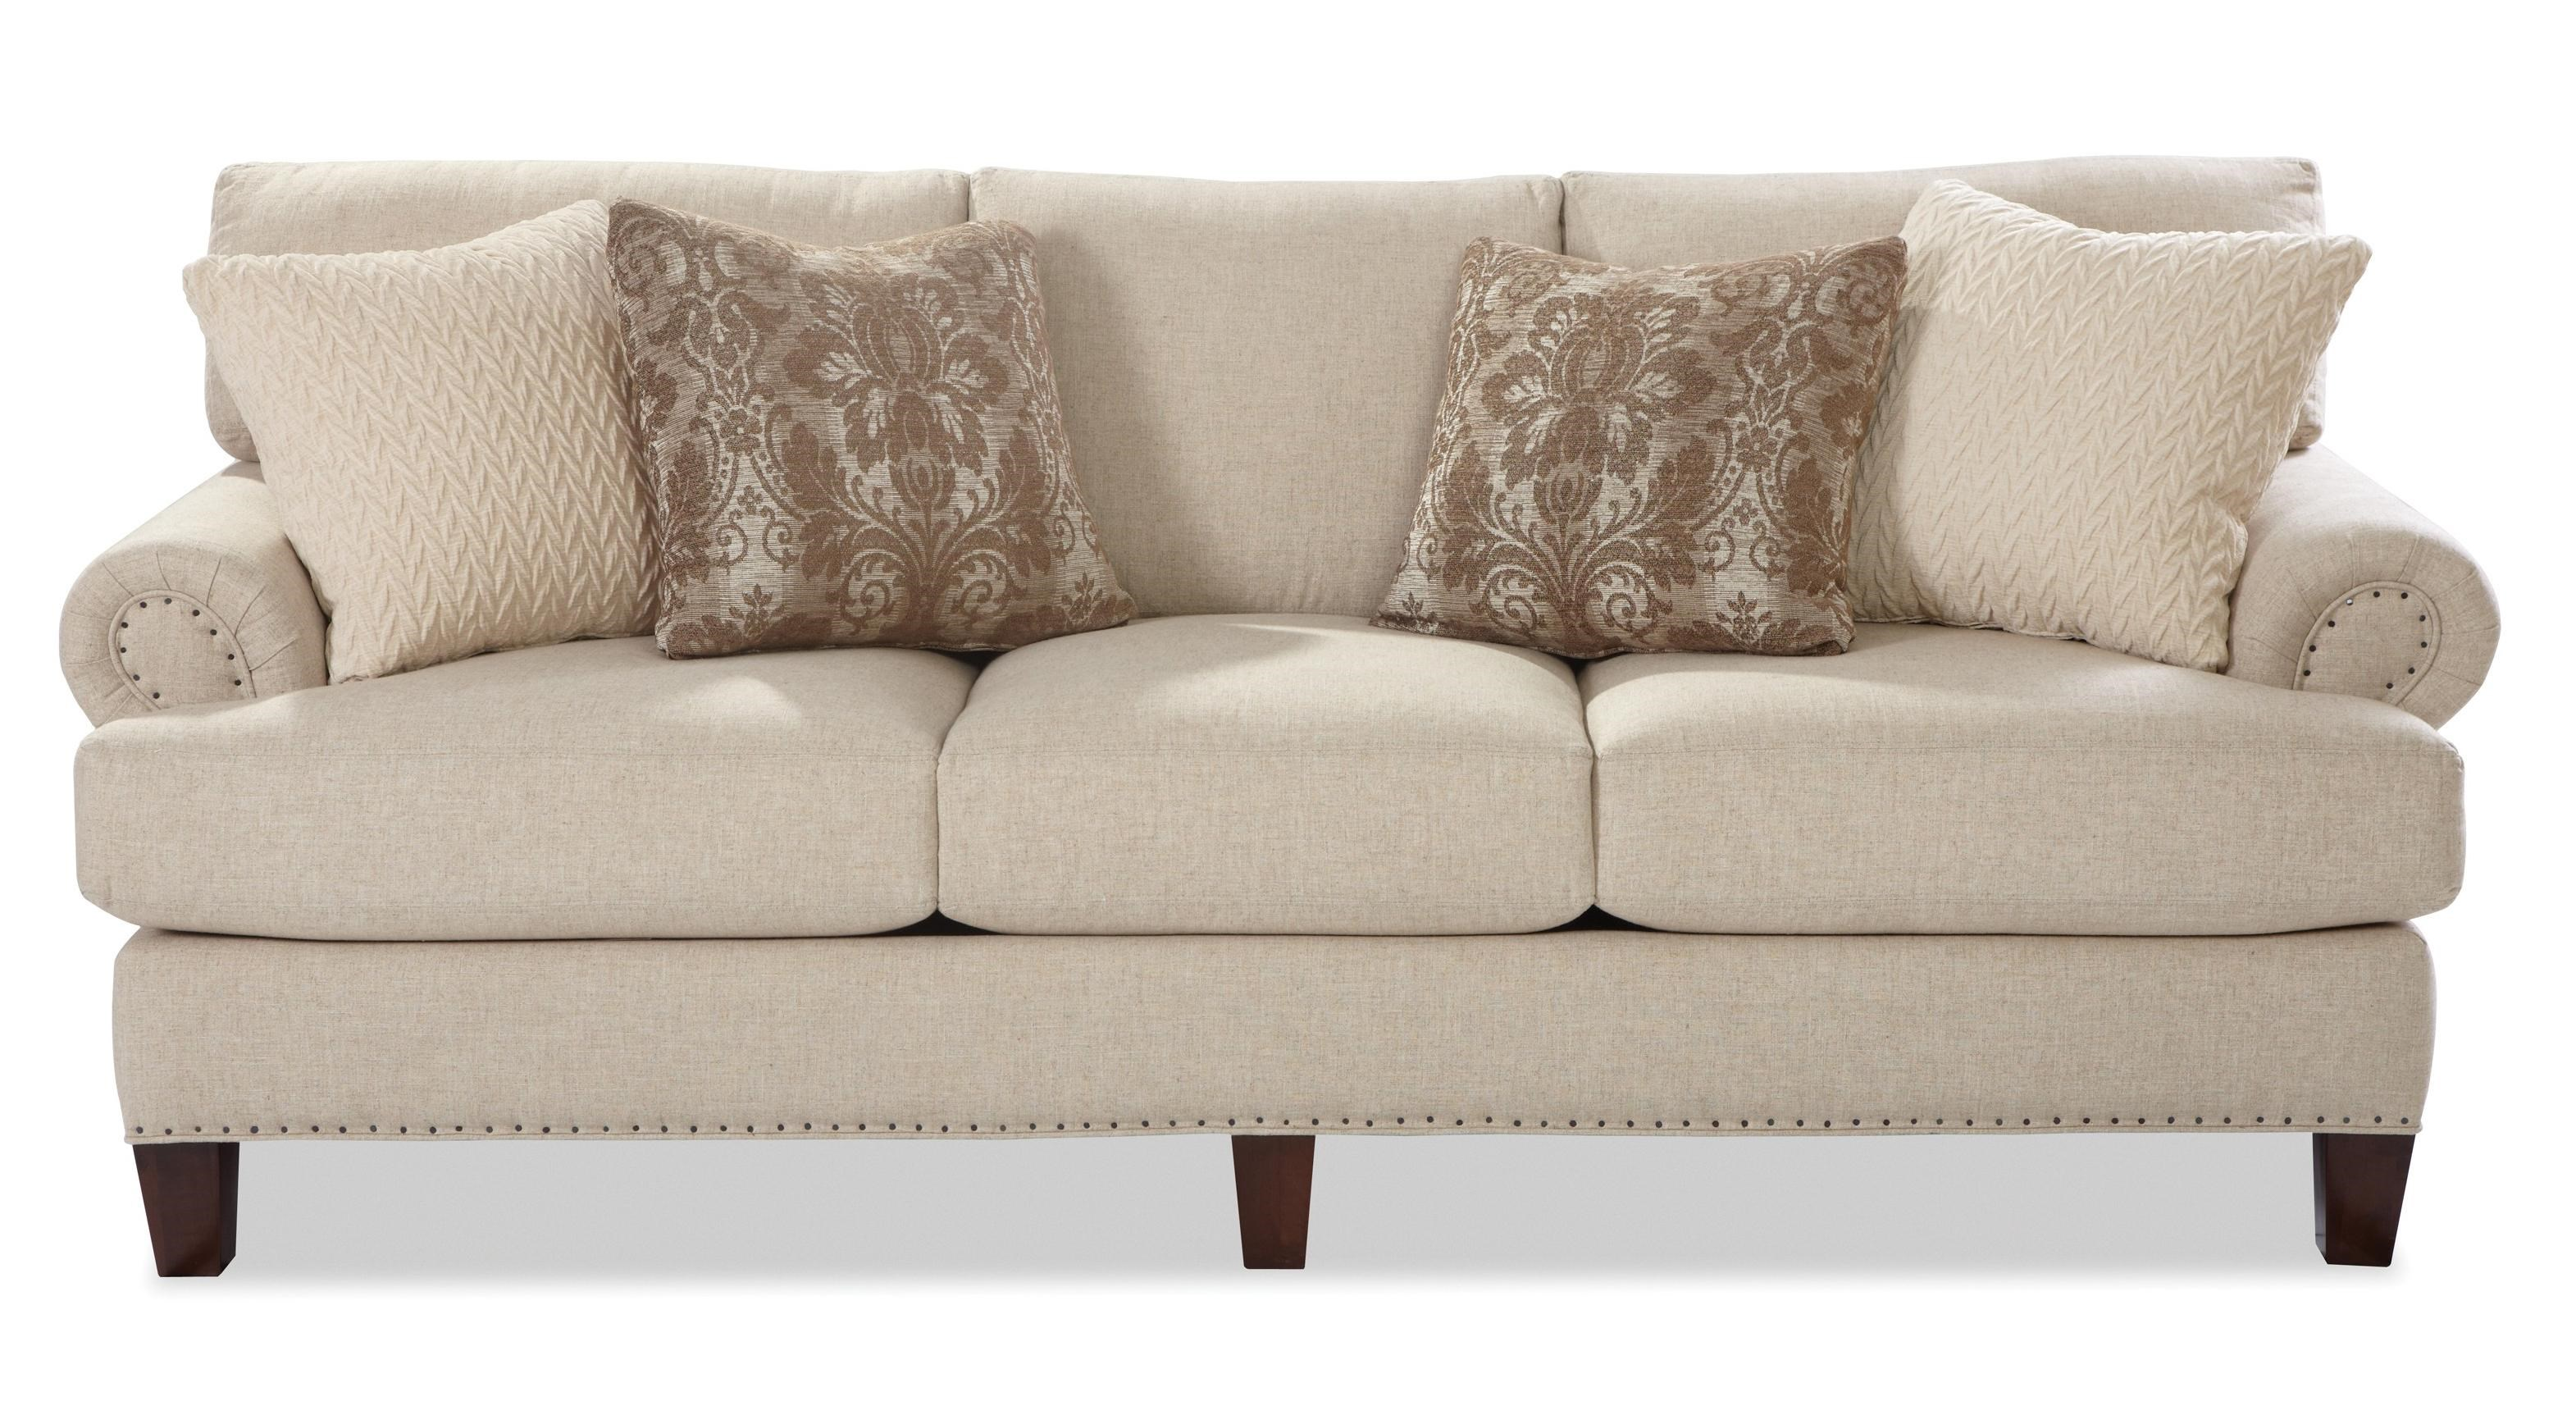 Craftmaster 7405 Transitional Sofa With Rolled Panel Arms And Vintage Tack  Nailheads   Olindeu0027s Furniture   Sofas